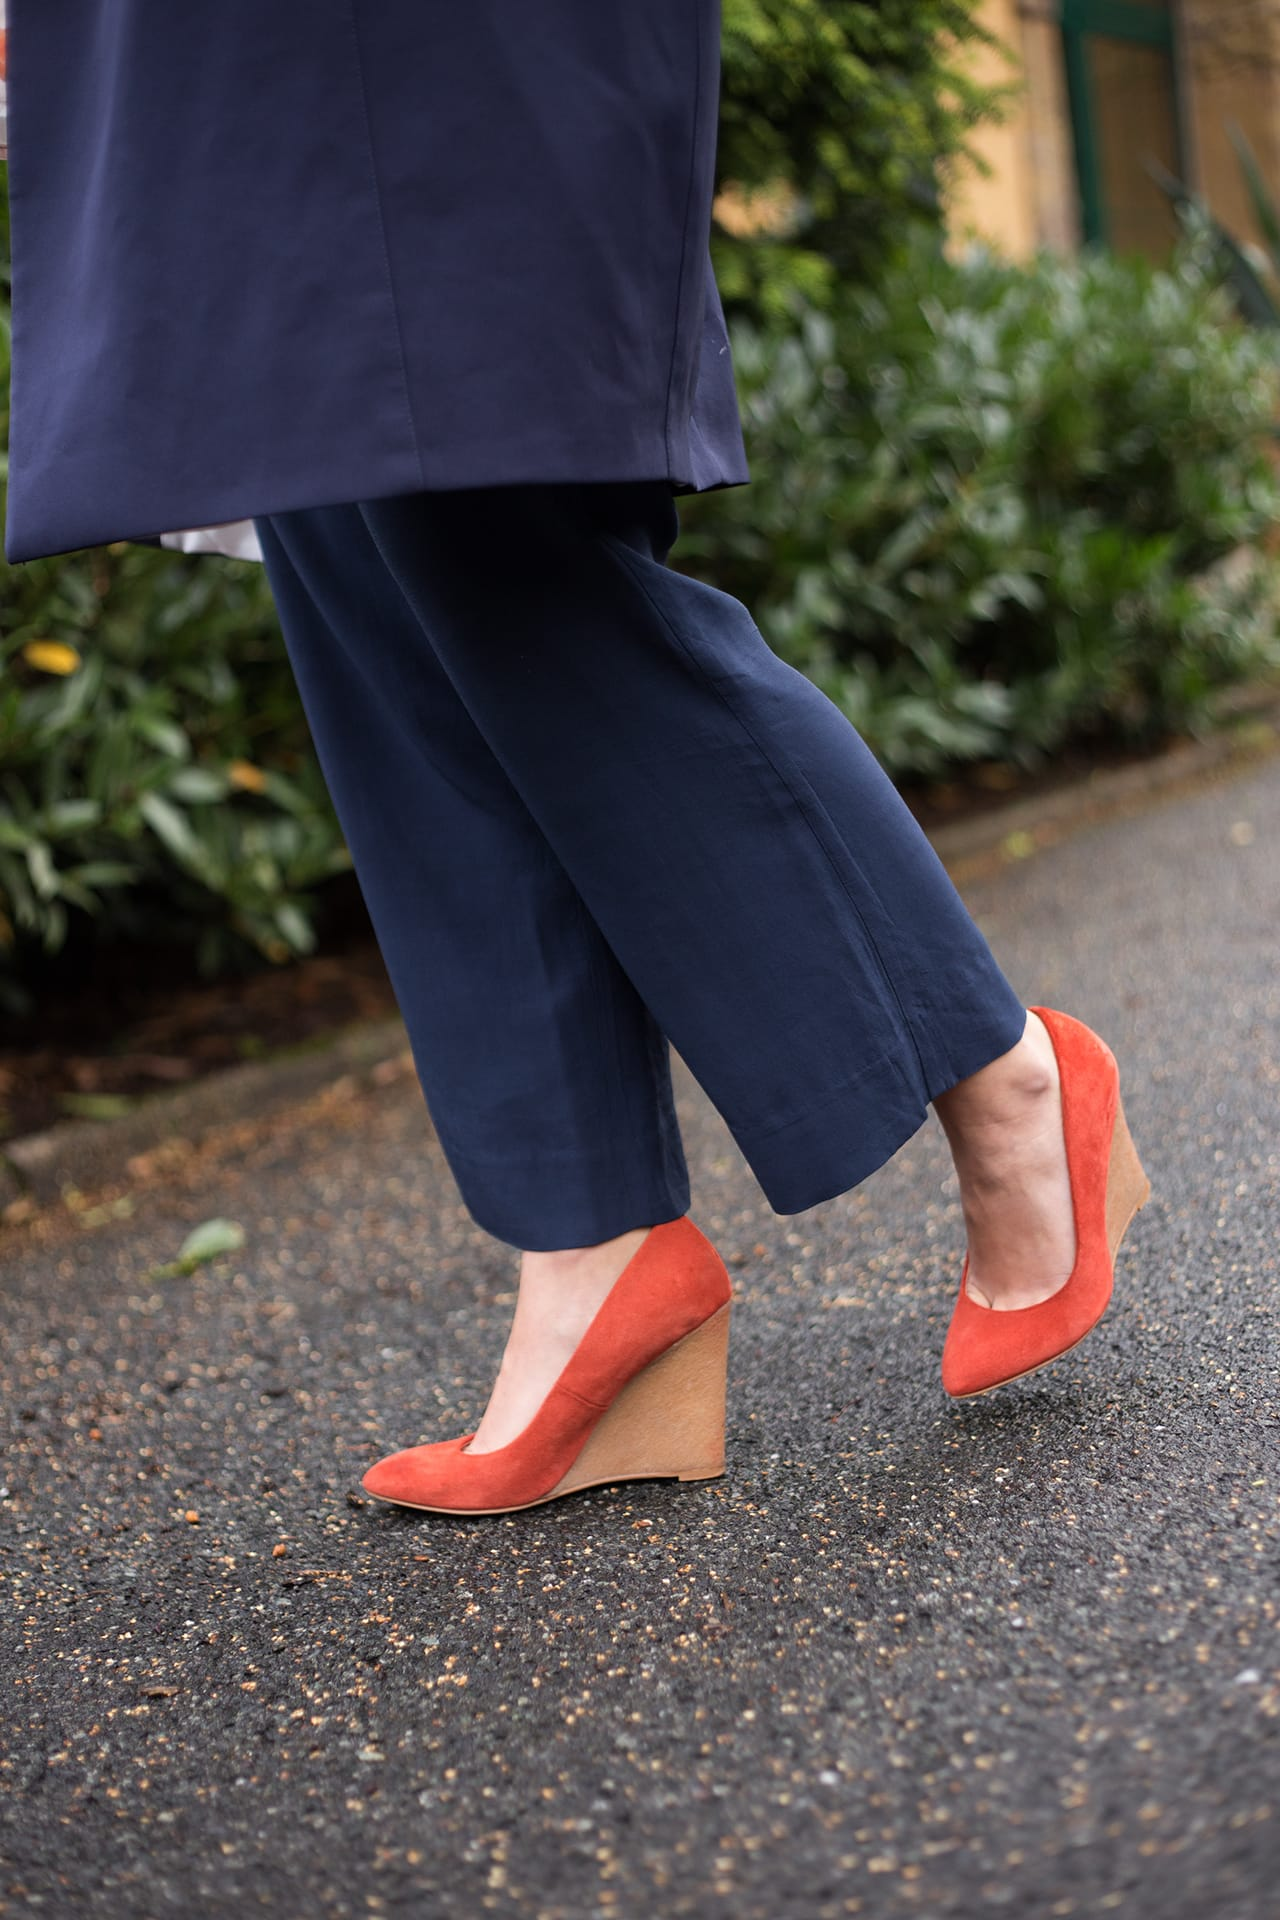 Luftig leichter Look aus Seide Lederpumps orange Zara